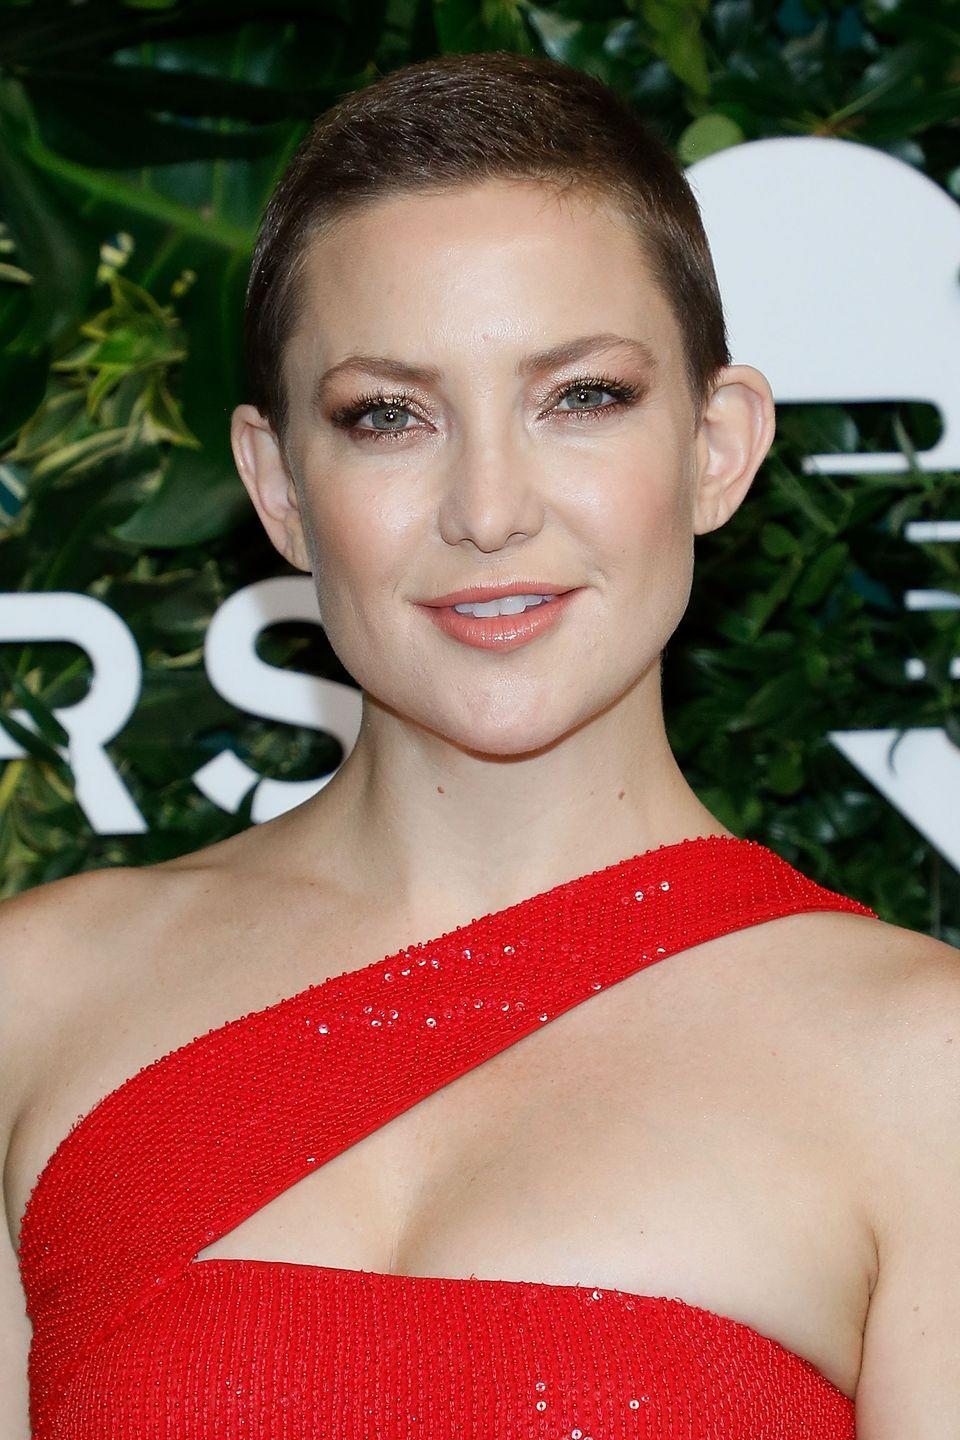 """<p>""""I didn't think I'd love it so much,"""" Kate Hudson told us in 2017, speaking on her newly shaved head. """"The connection to (my hair) was powerful and I wasn't prepared for that. It's so liberating.""""</p>"""